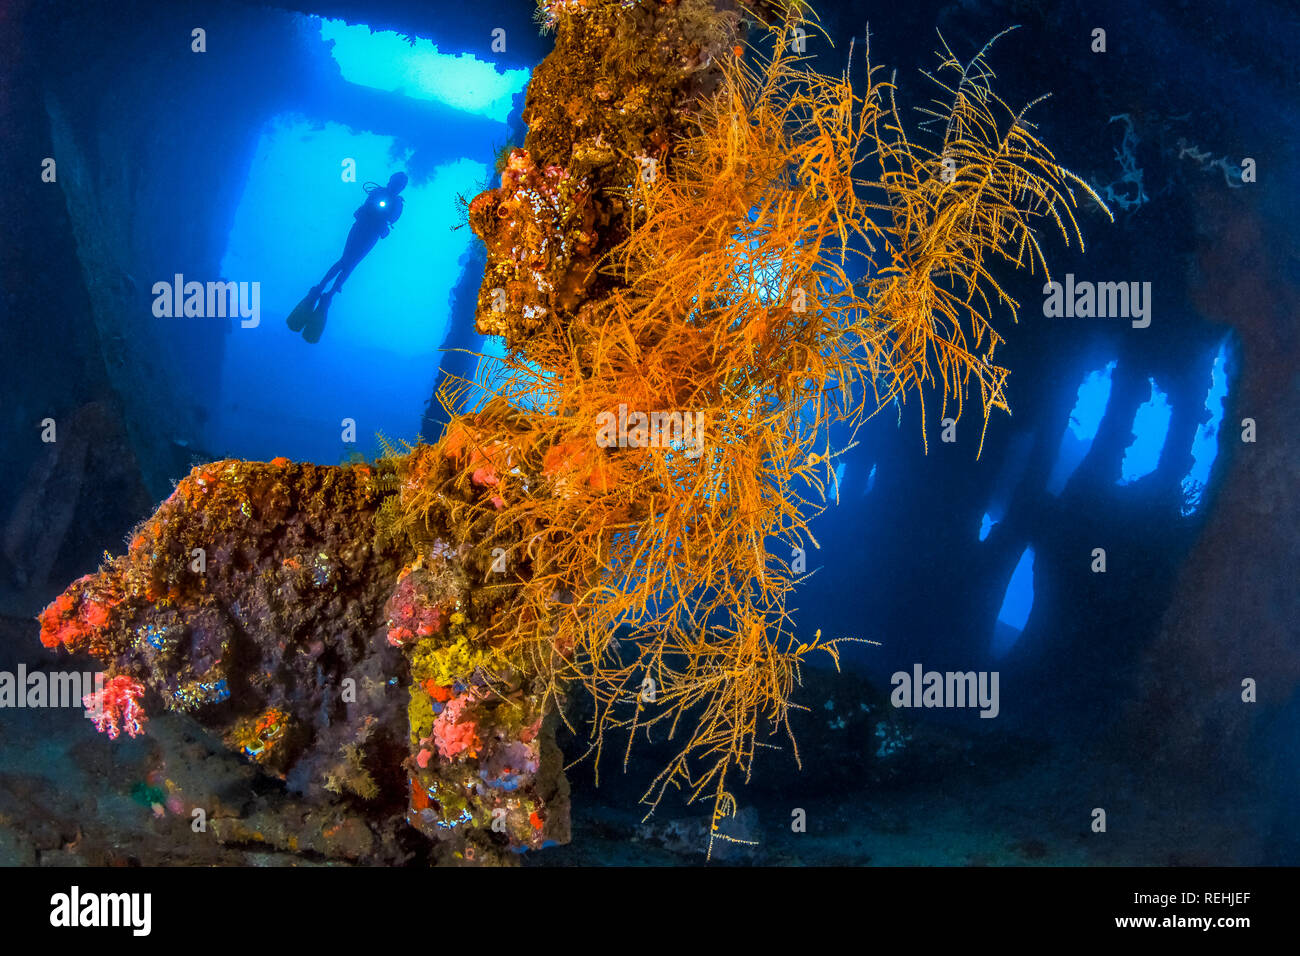 Storage Room, USAT Liberty, Wreck, Bali, Indonesia, Diving, diver, softcoral, Tulamben - Stock Image